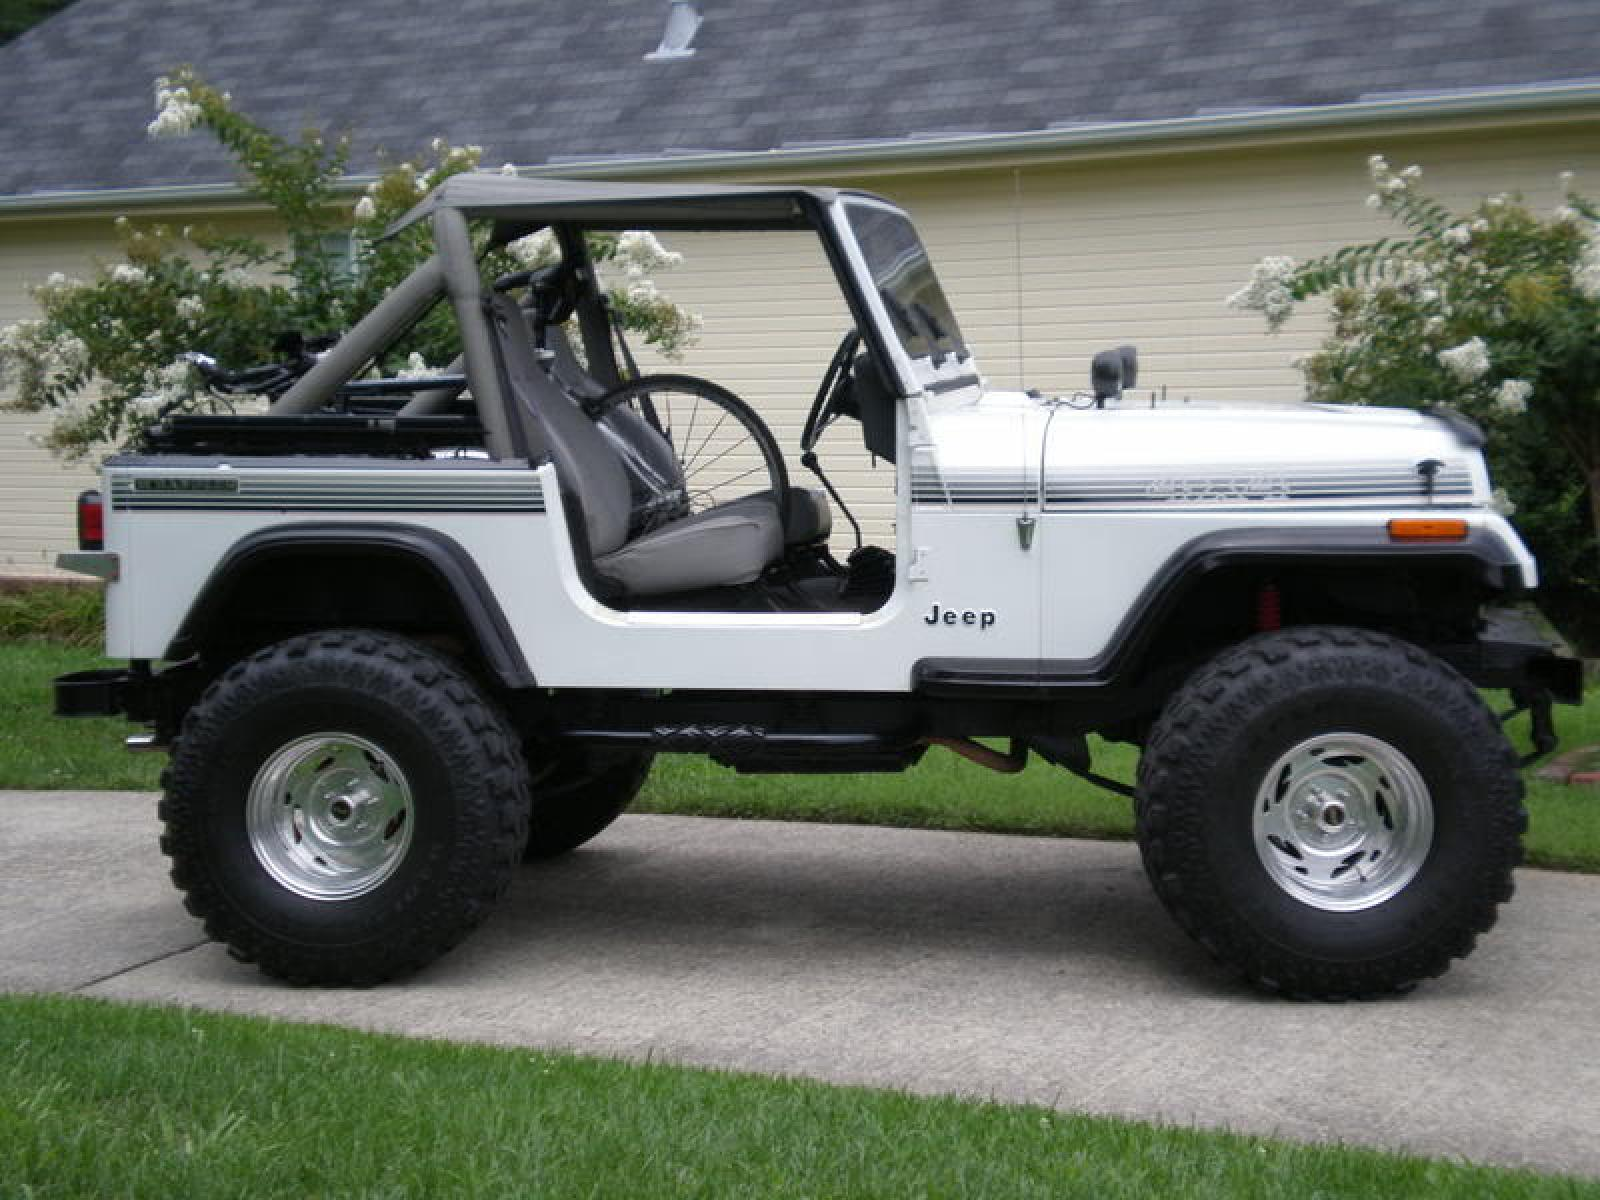 1990 jeep wrangler information and photos zombiedrive. Black Bedroom Furniture Sets. Home Design Ideas